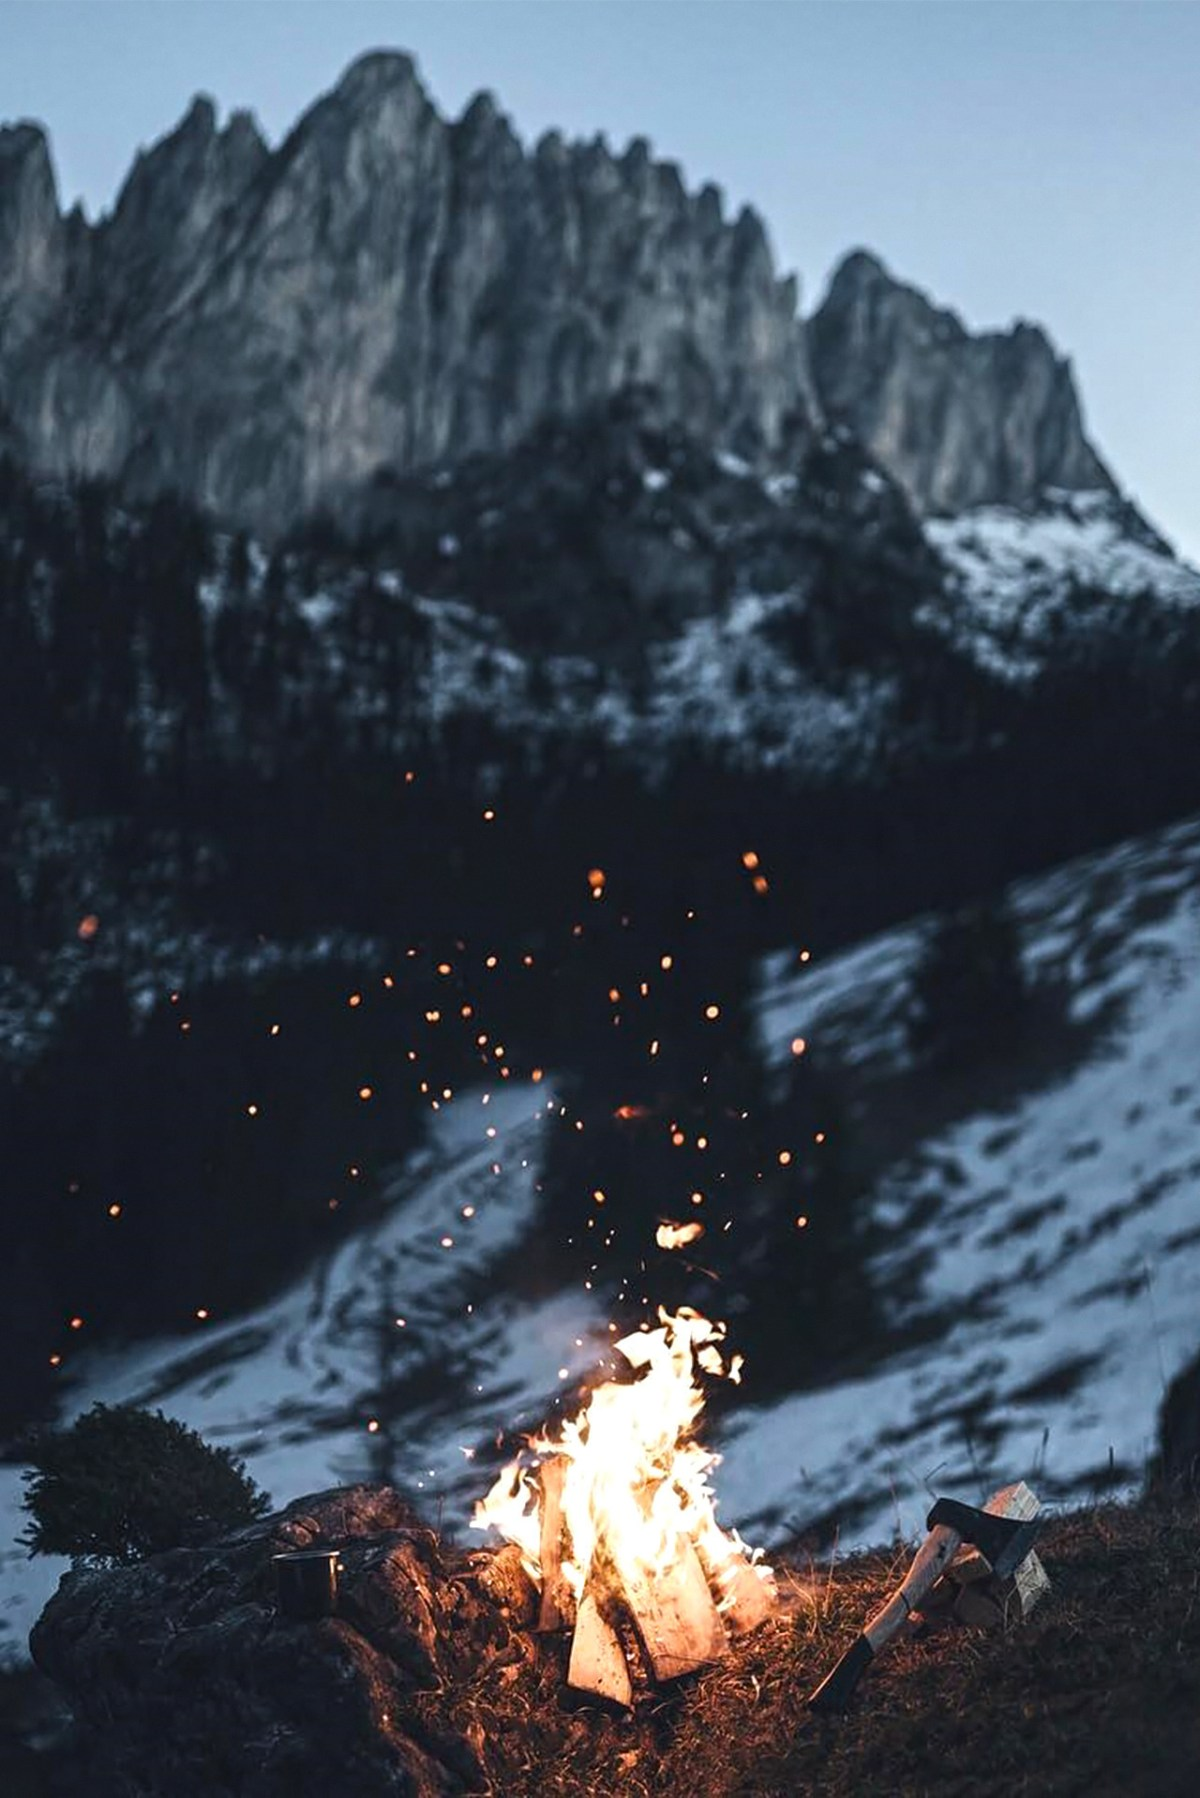 mountain snow scene with campfire